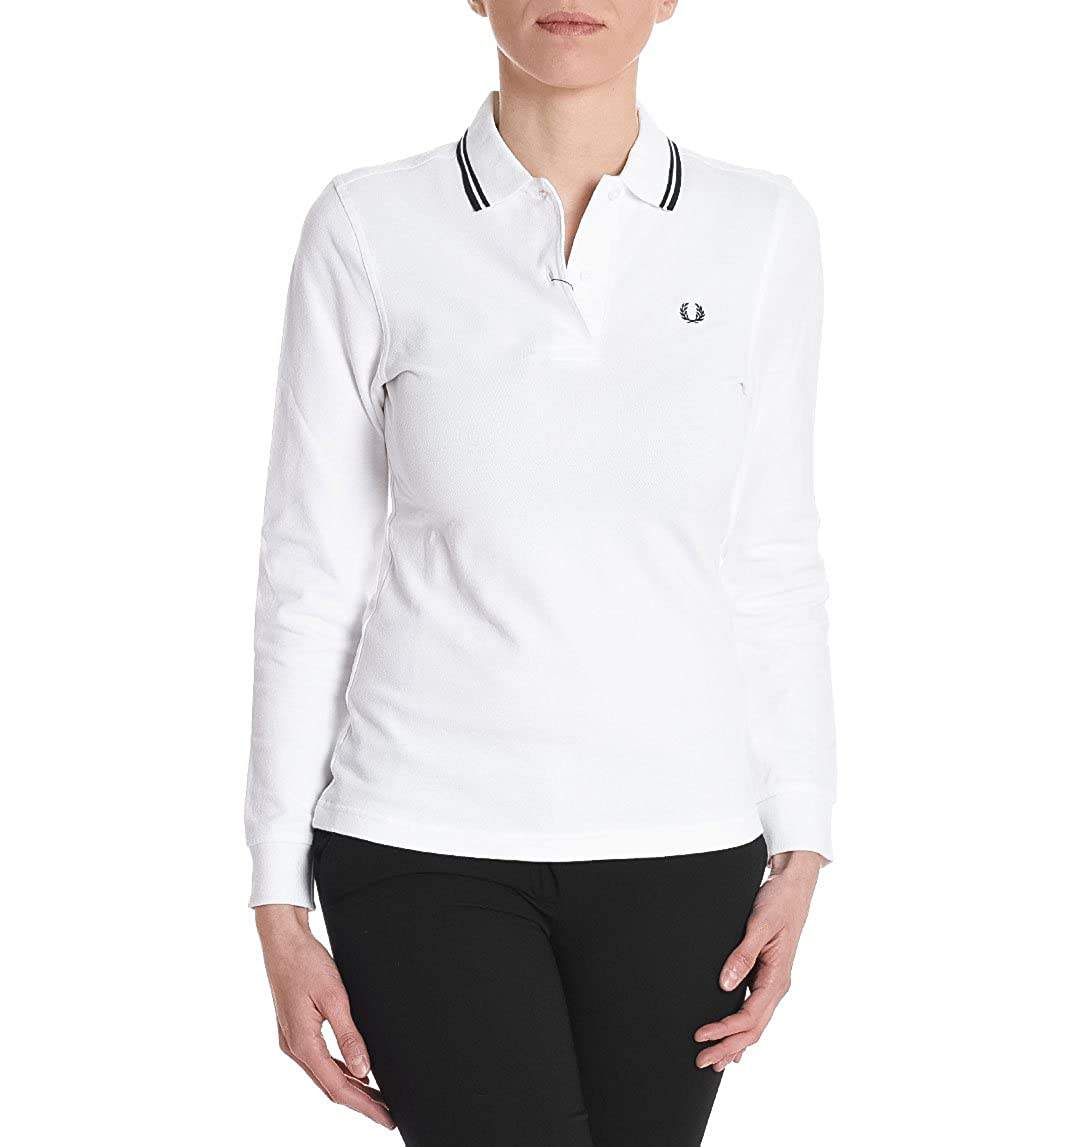 White Fred uk Perry Amazon Shirt Women's Fpg3636205 Polo Cotton co qxT4fx